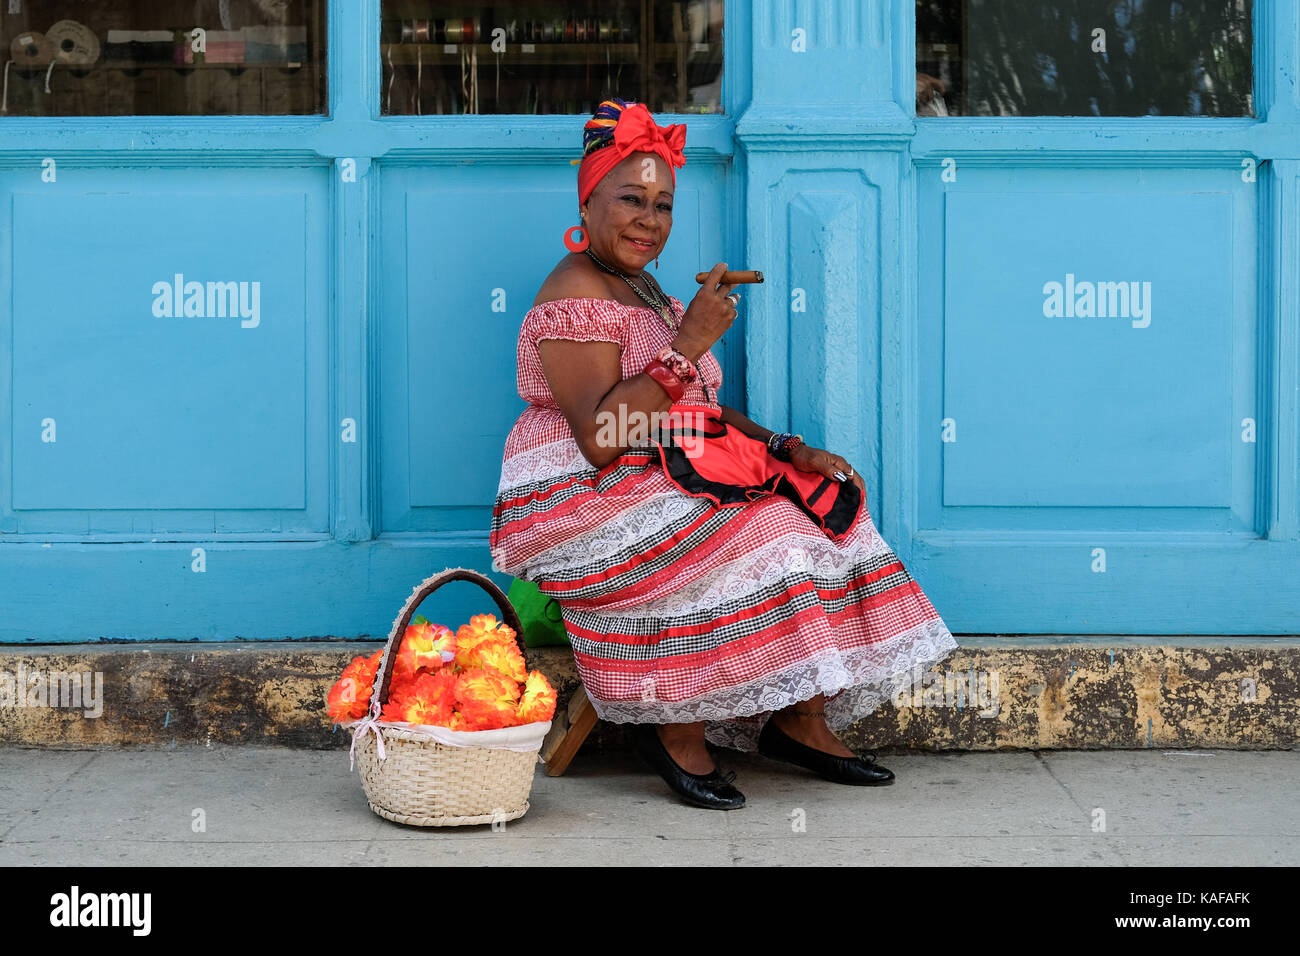 A colourfully dressed Cuban woman in traditional clothing sits on the streets of Habana Vieja in Havana, Cuba. Stock Photo